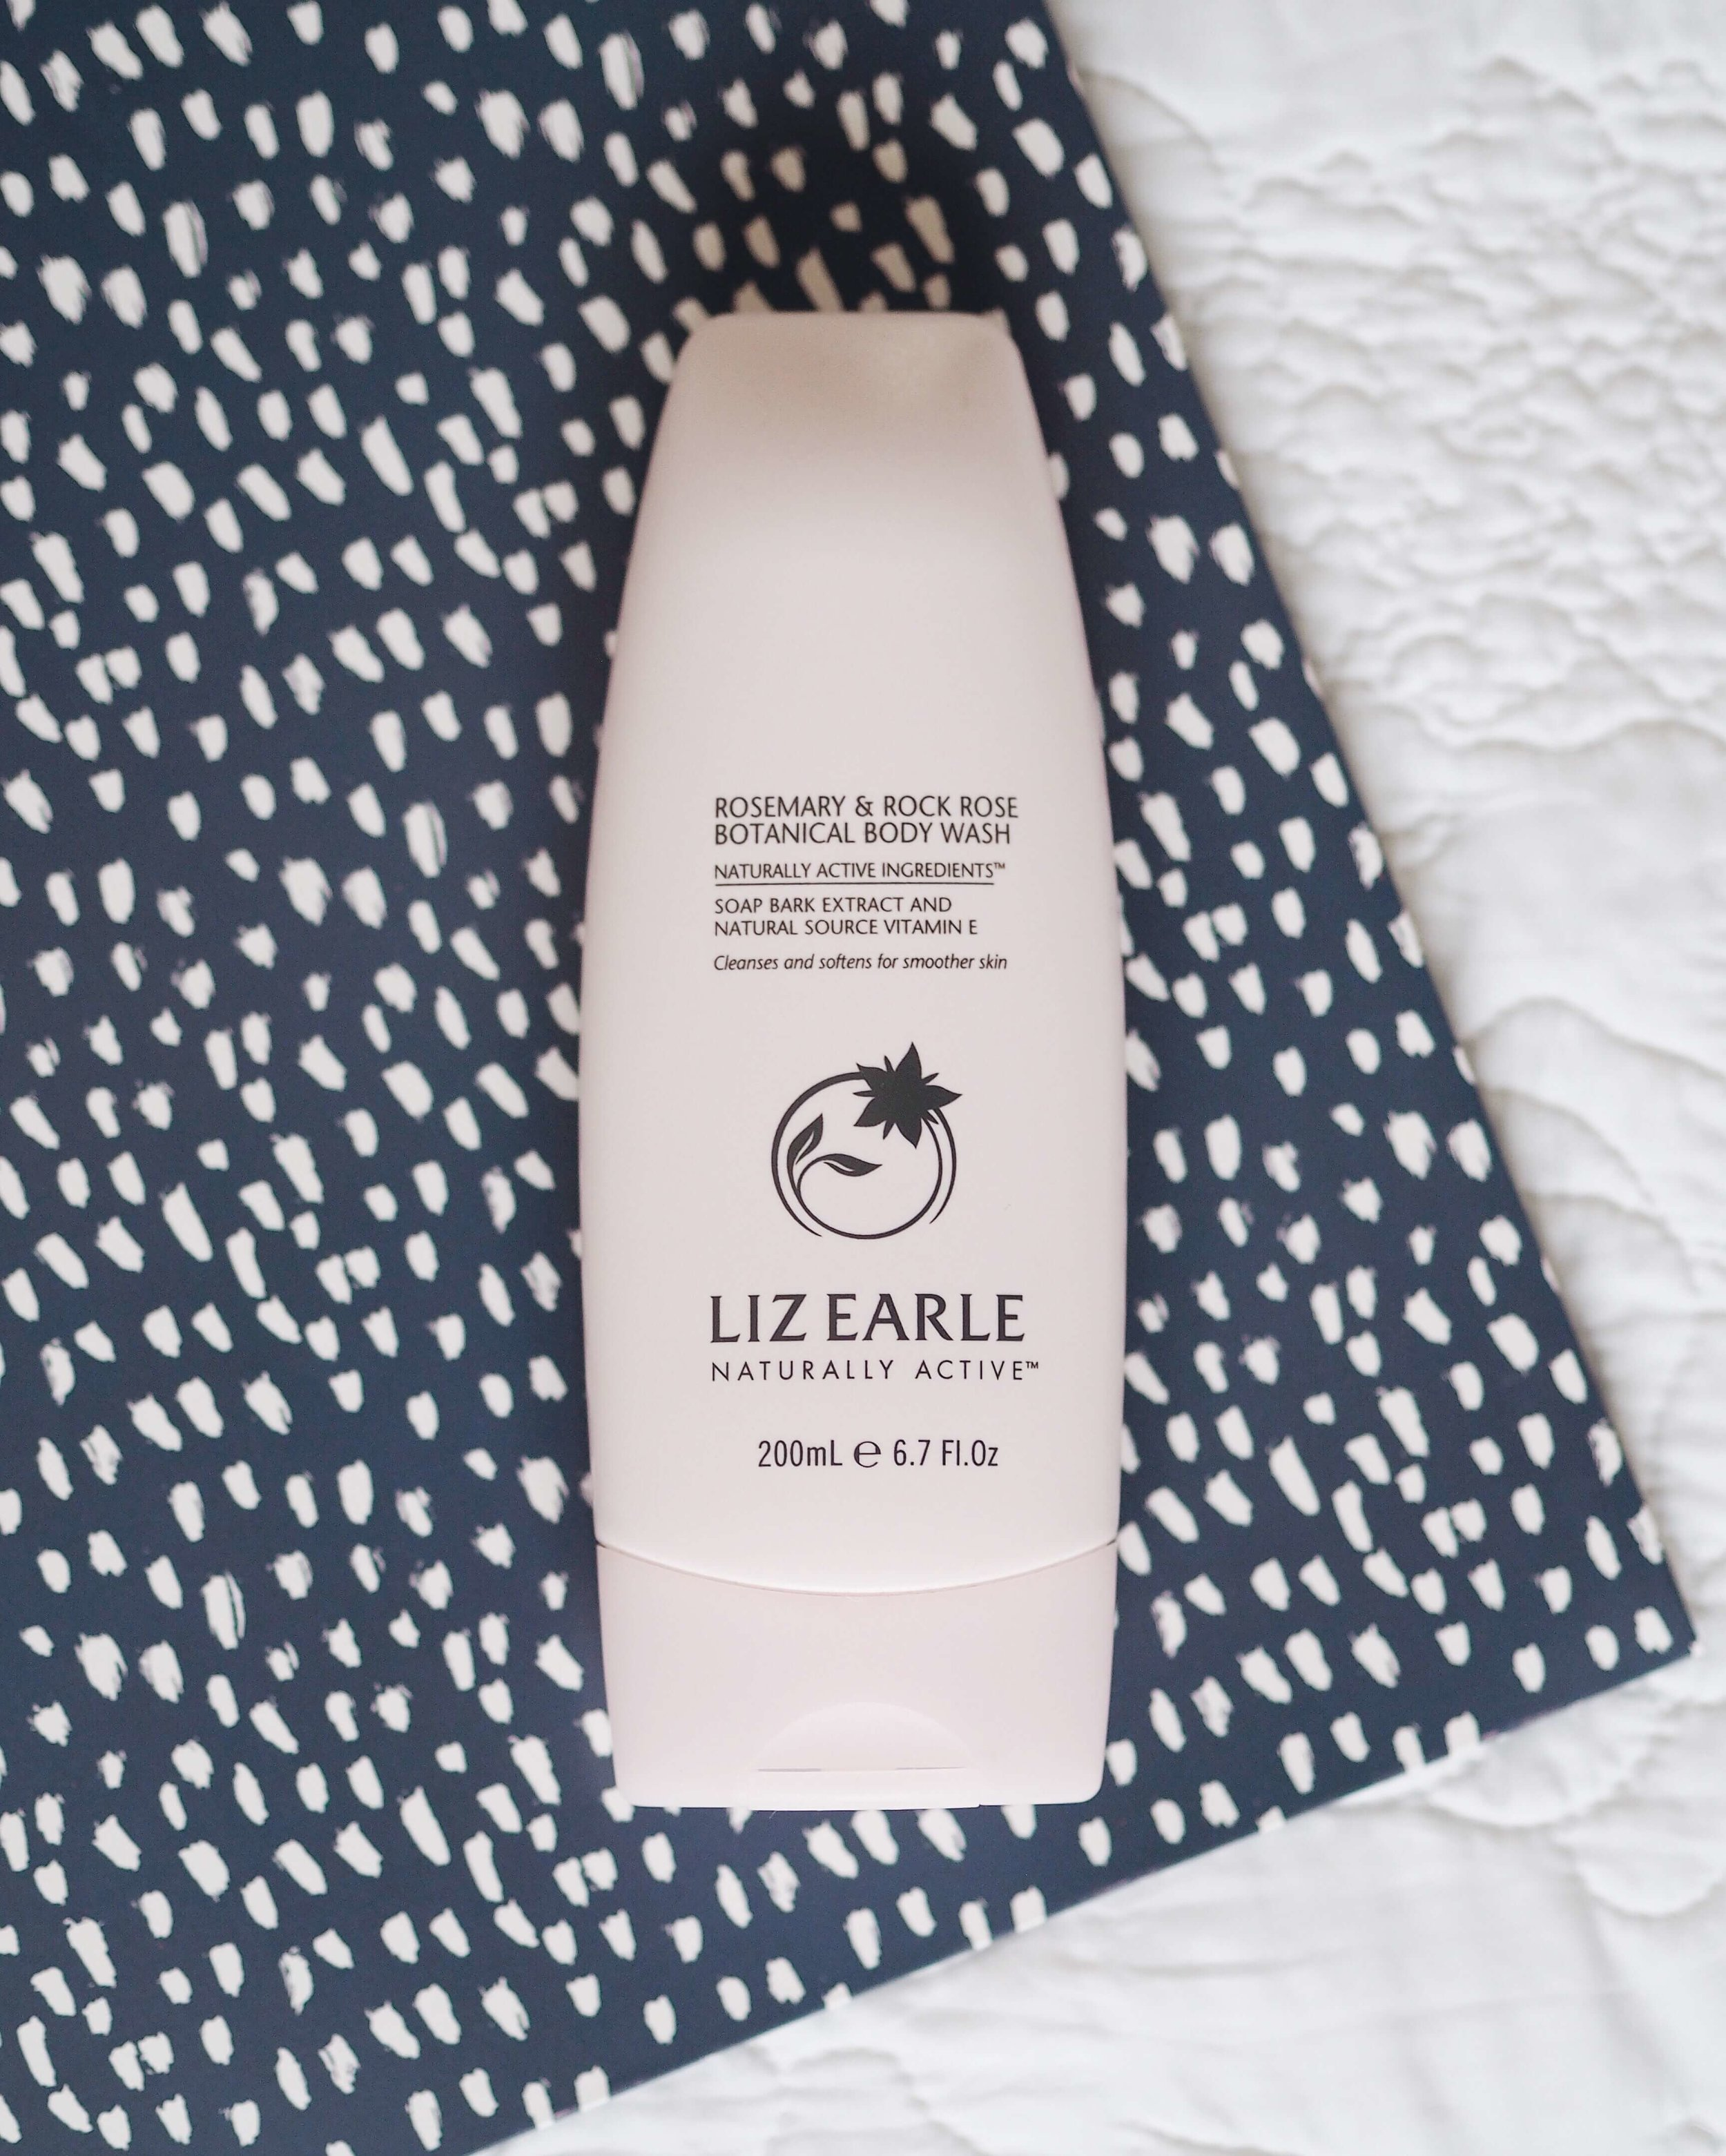 liz-earle-shower-gel.jpg